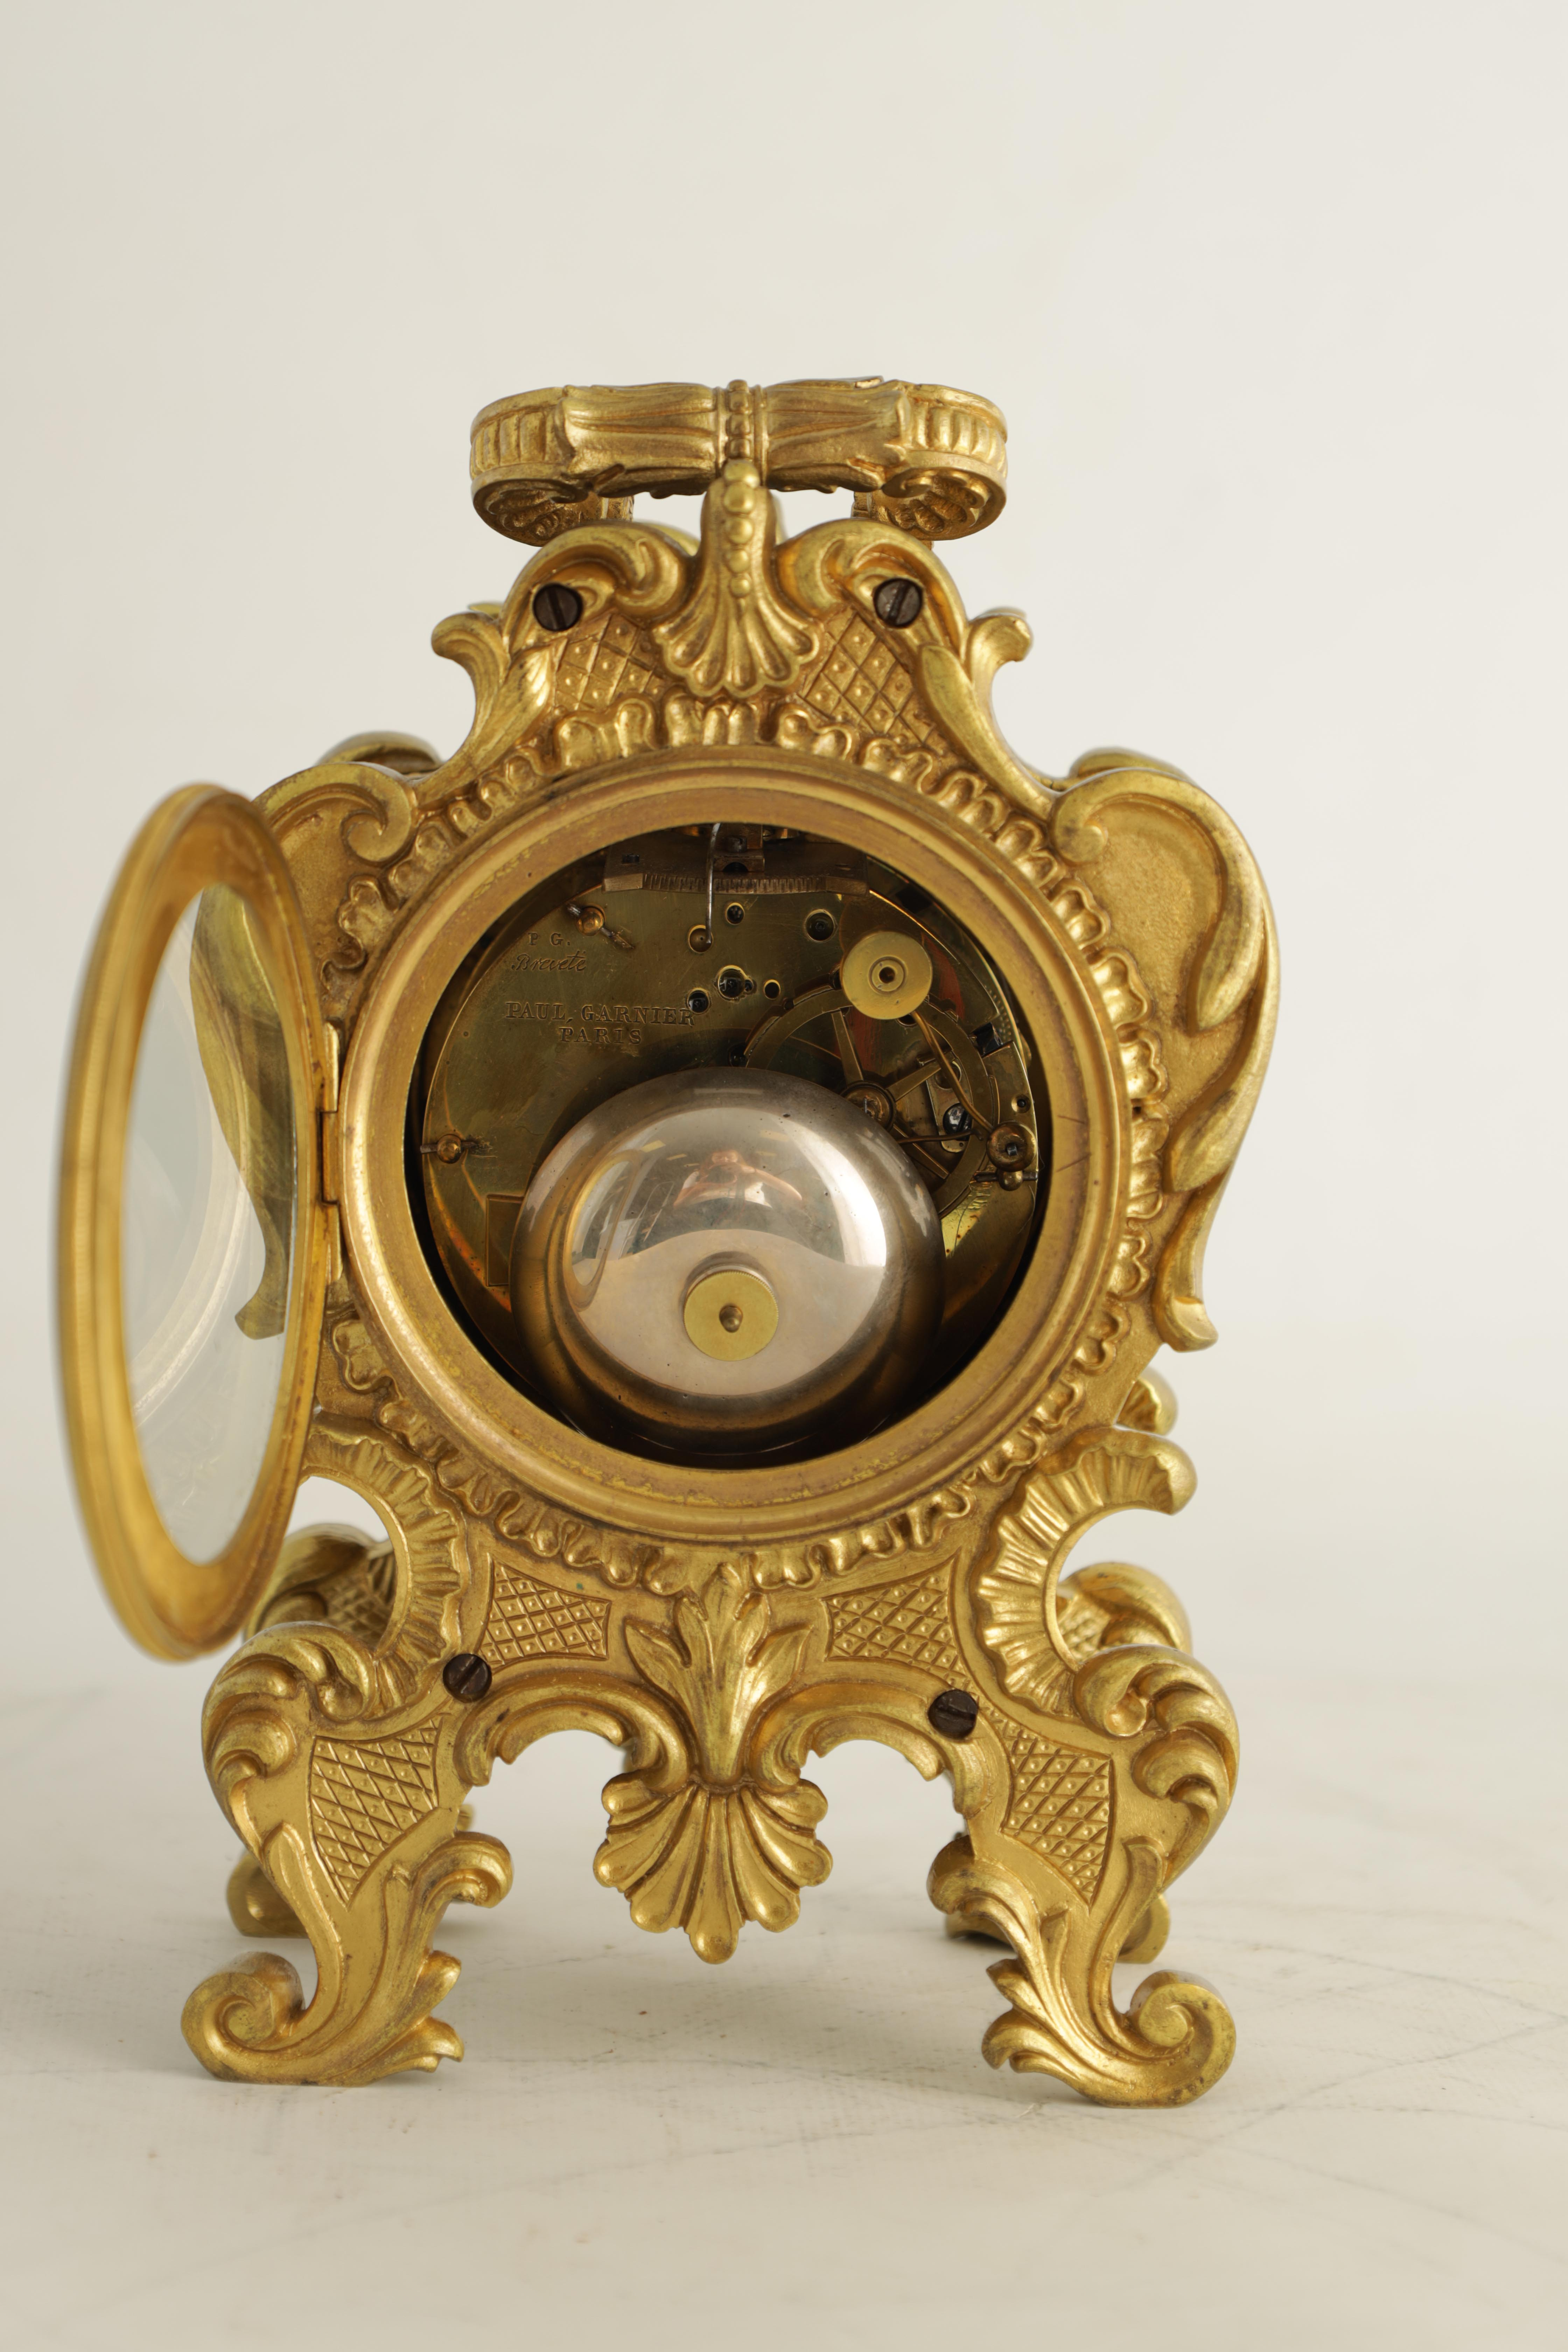 PAUL GARNIER, PARIS A MID 19TH CENTURY FRENCH TRAVELLING MANTEL CLOCK the gilt bronze rococo style - Image 11 of 13